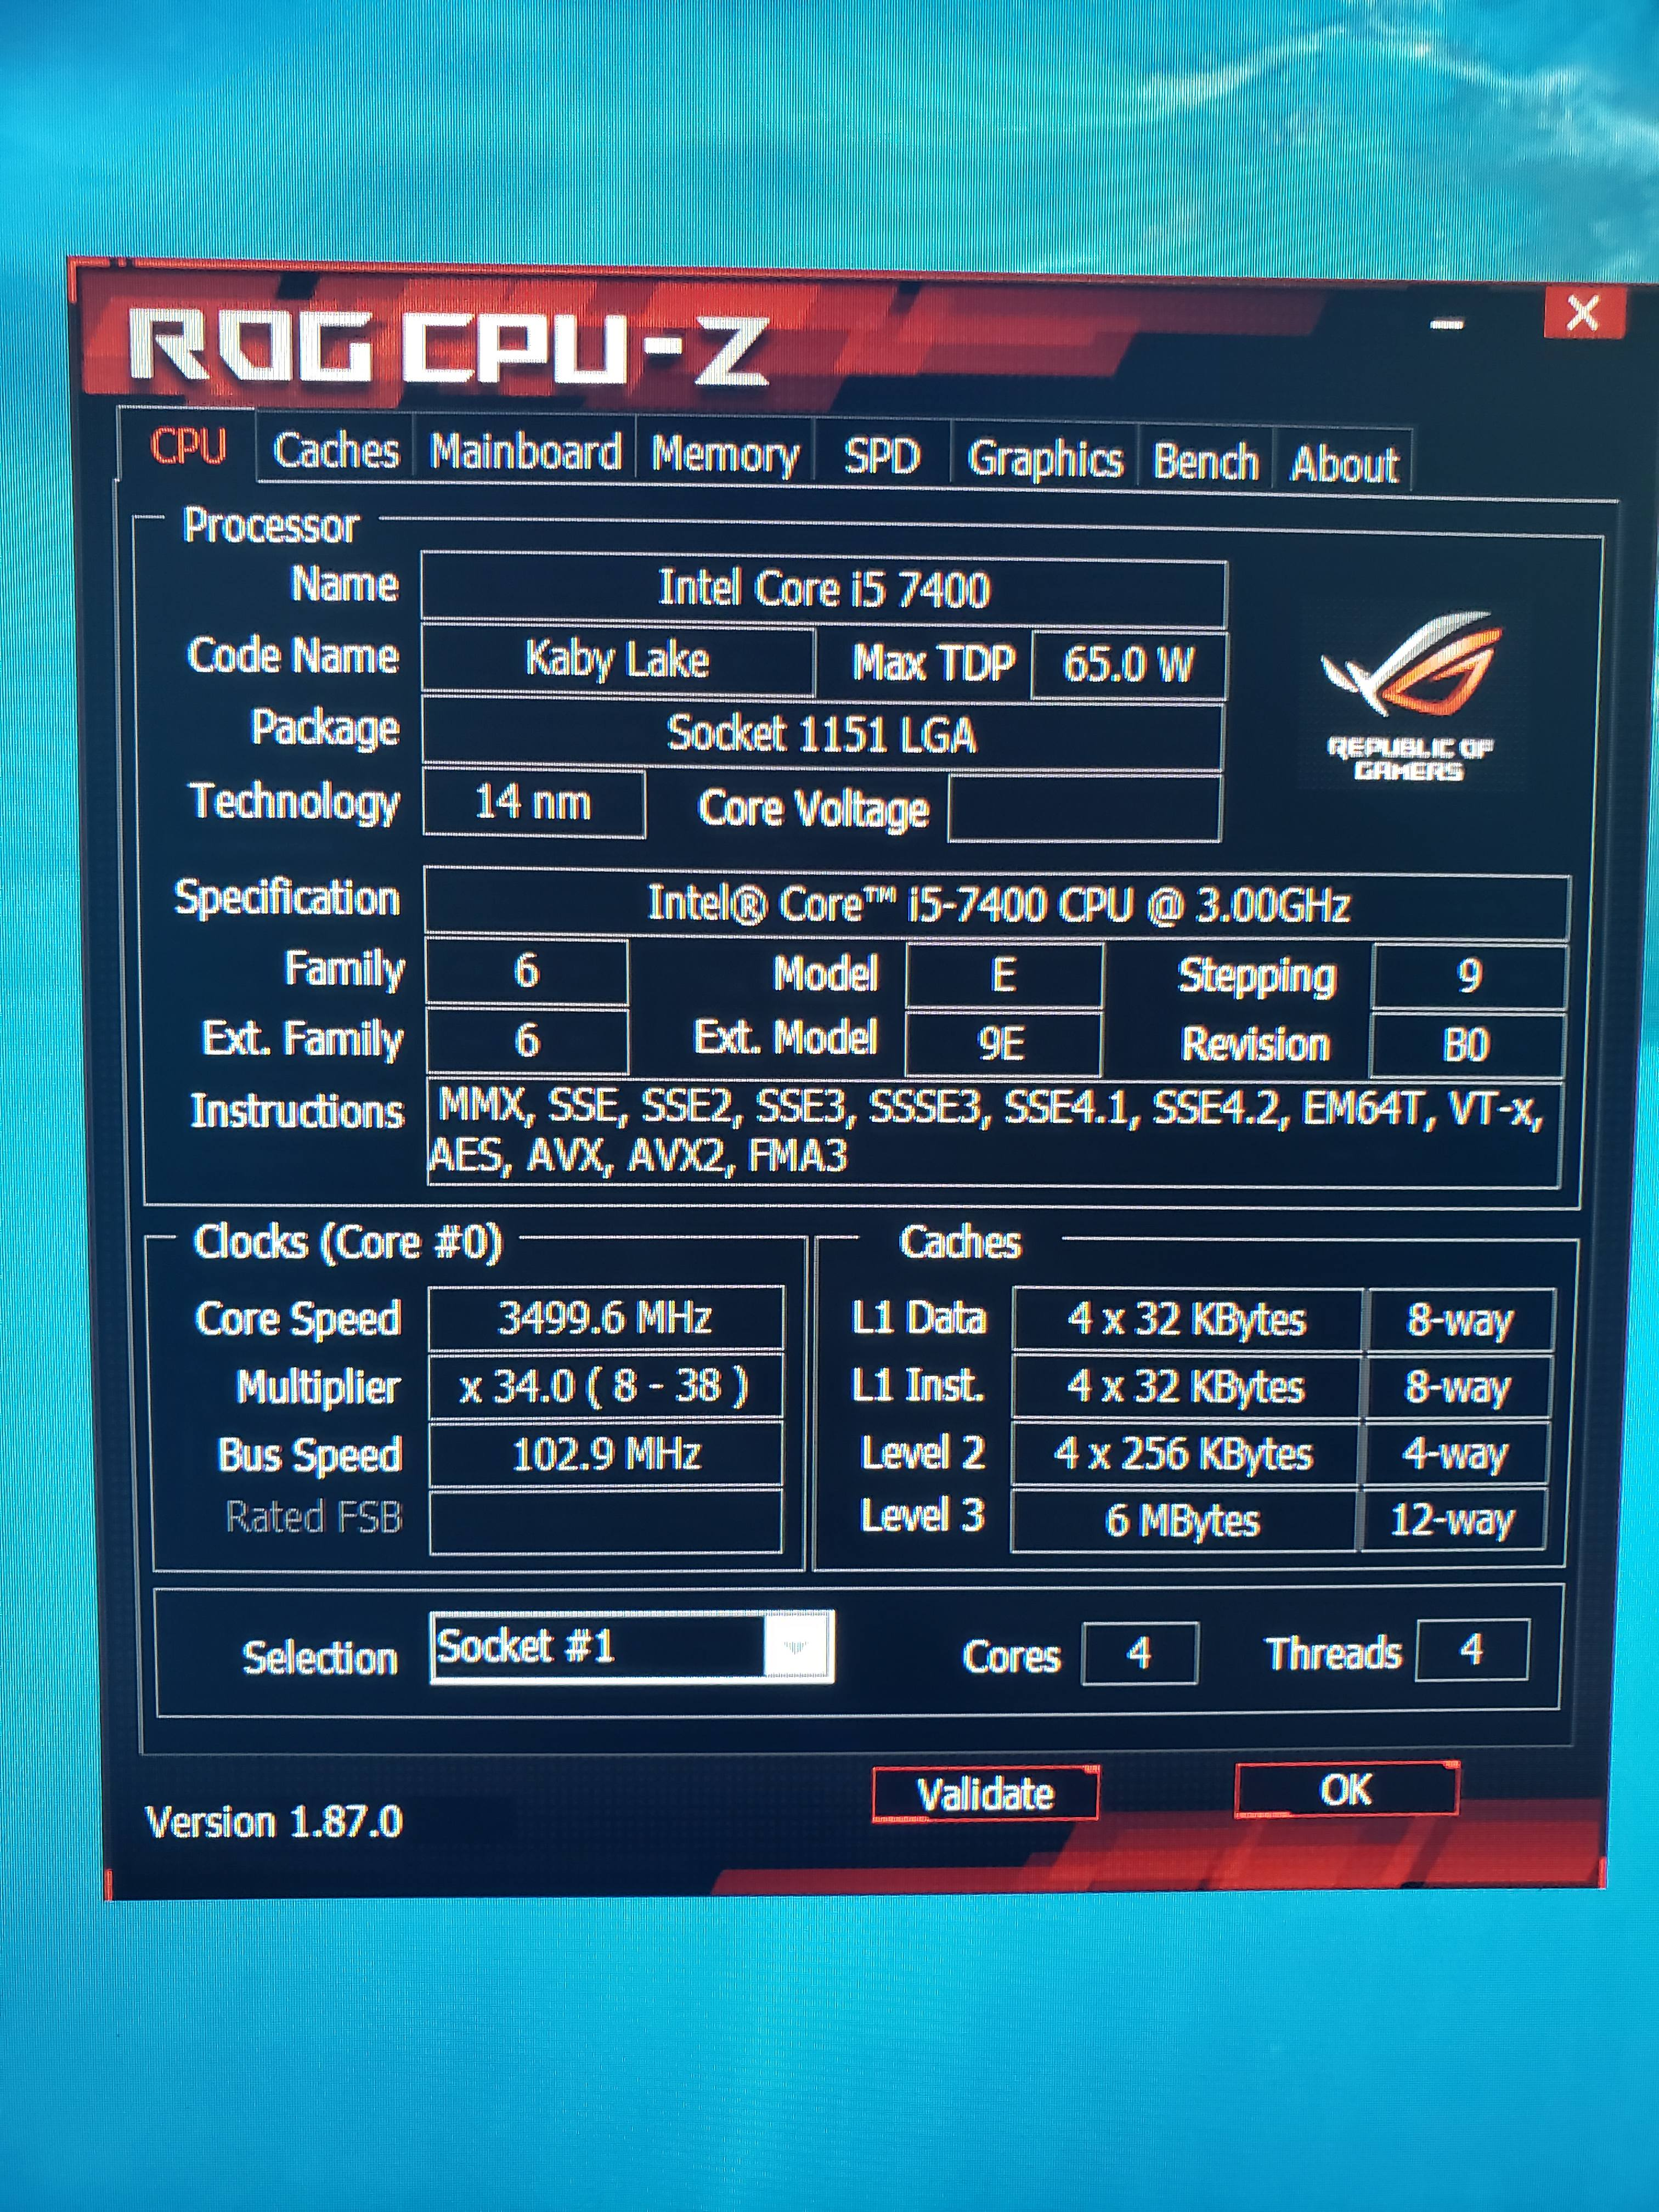 Overclock i5 7400 non k - CPUs, Motherboards, and Memory - Linus